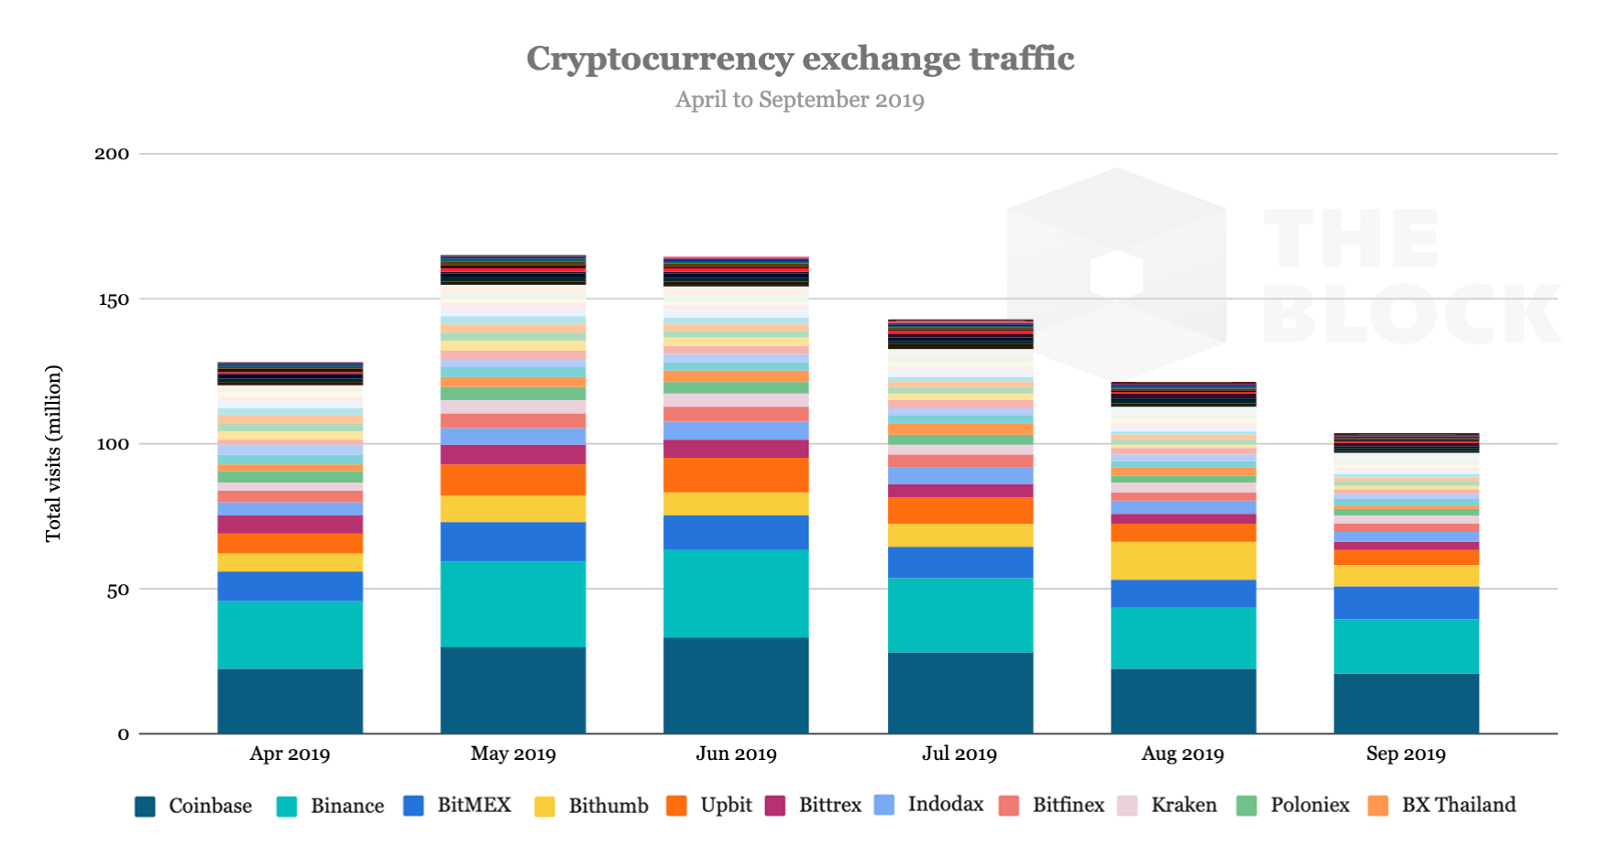 Crypto exchanges experiencing a steady drop in traffic since June, suggesting declining retail interest